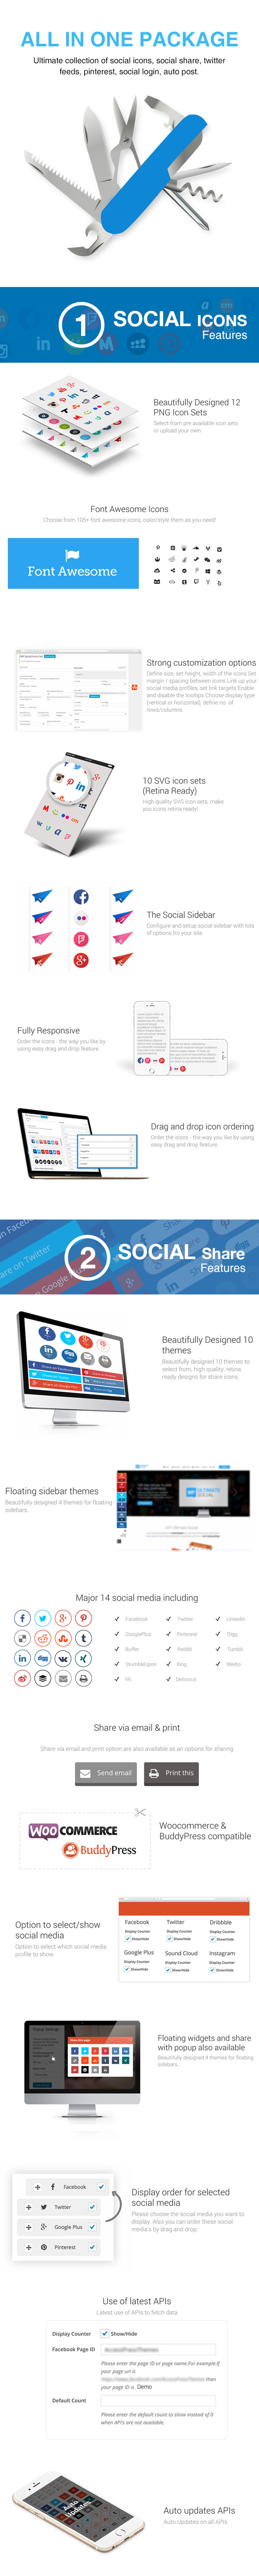 WP Ultimate Social - All in One Social Features' Collection WordPress Plugin - 1